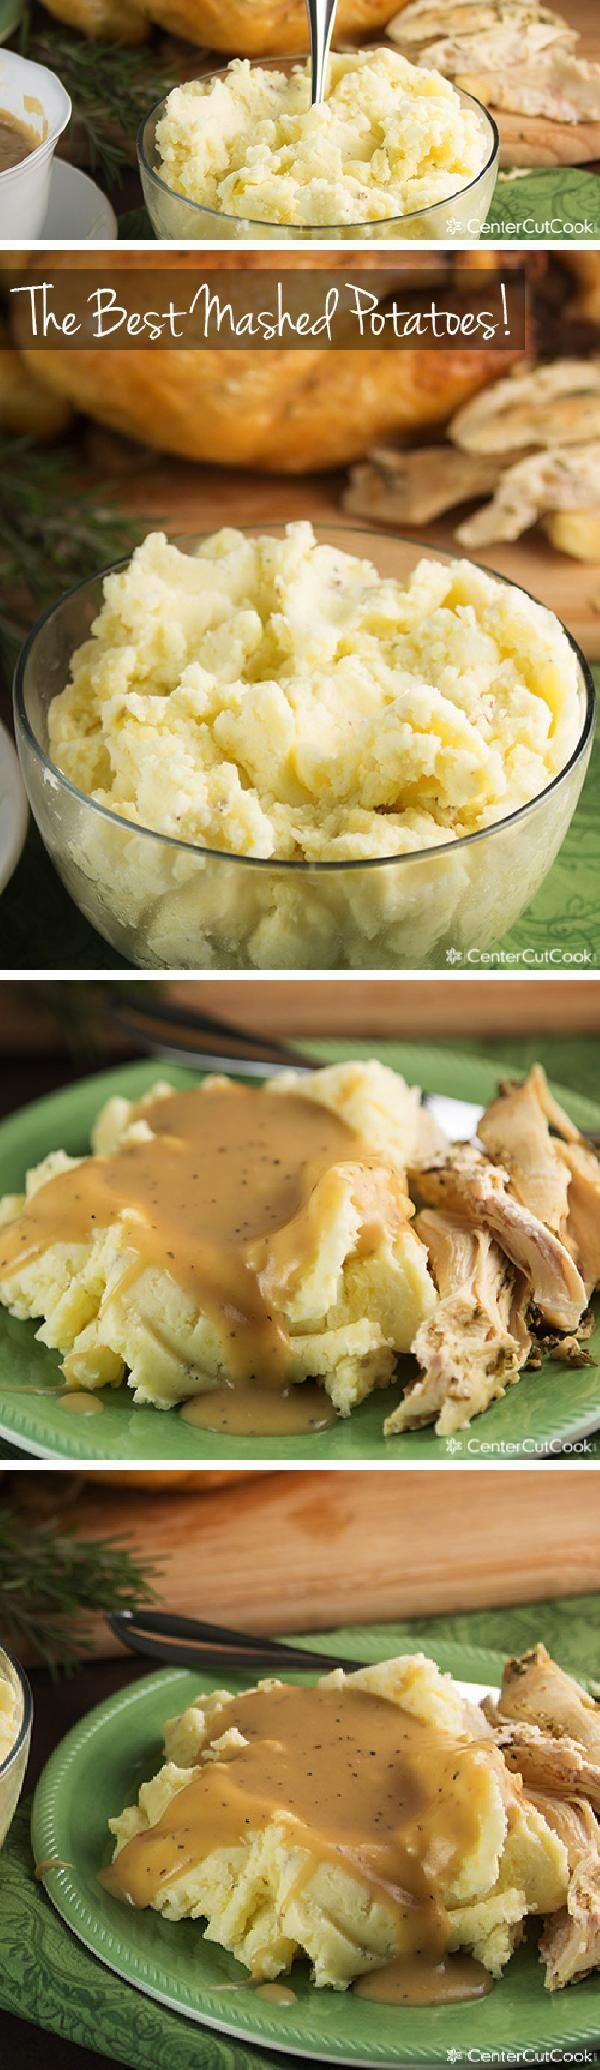 Everybody has THEIR favorite way of preparing MASHED POTATOES: with skin, without skin, with milk, without milk, with cream cheese or sour cream. THE options are endless! This combination of ingredients in this recipe results in THE BEST MASHED POTATOES!